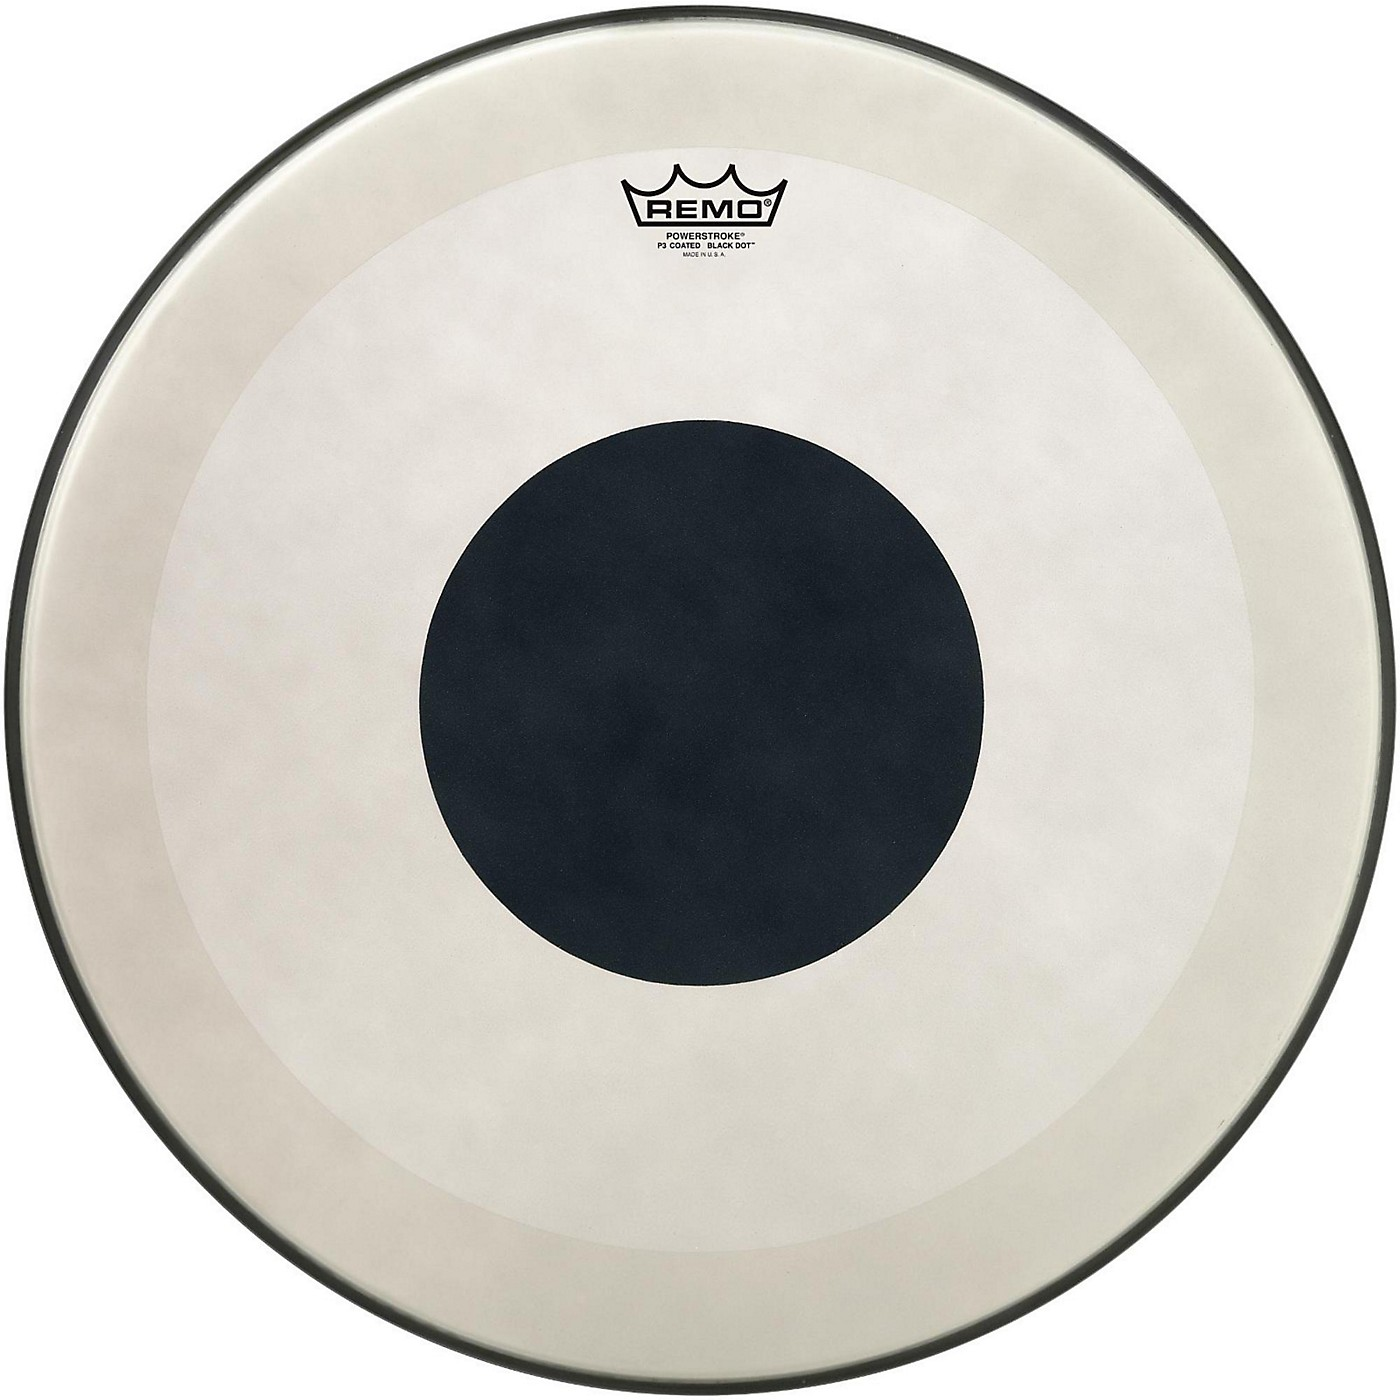 Remo Powerstroke 3 Coated Bass Drum Head with Black Dot thumbnail